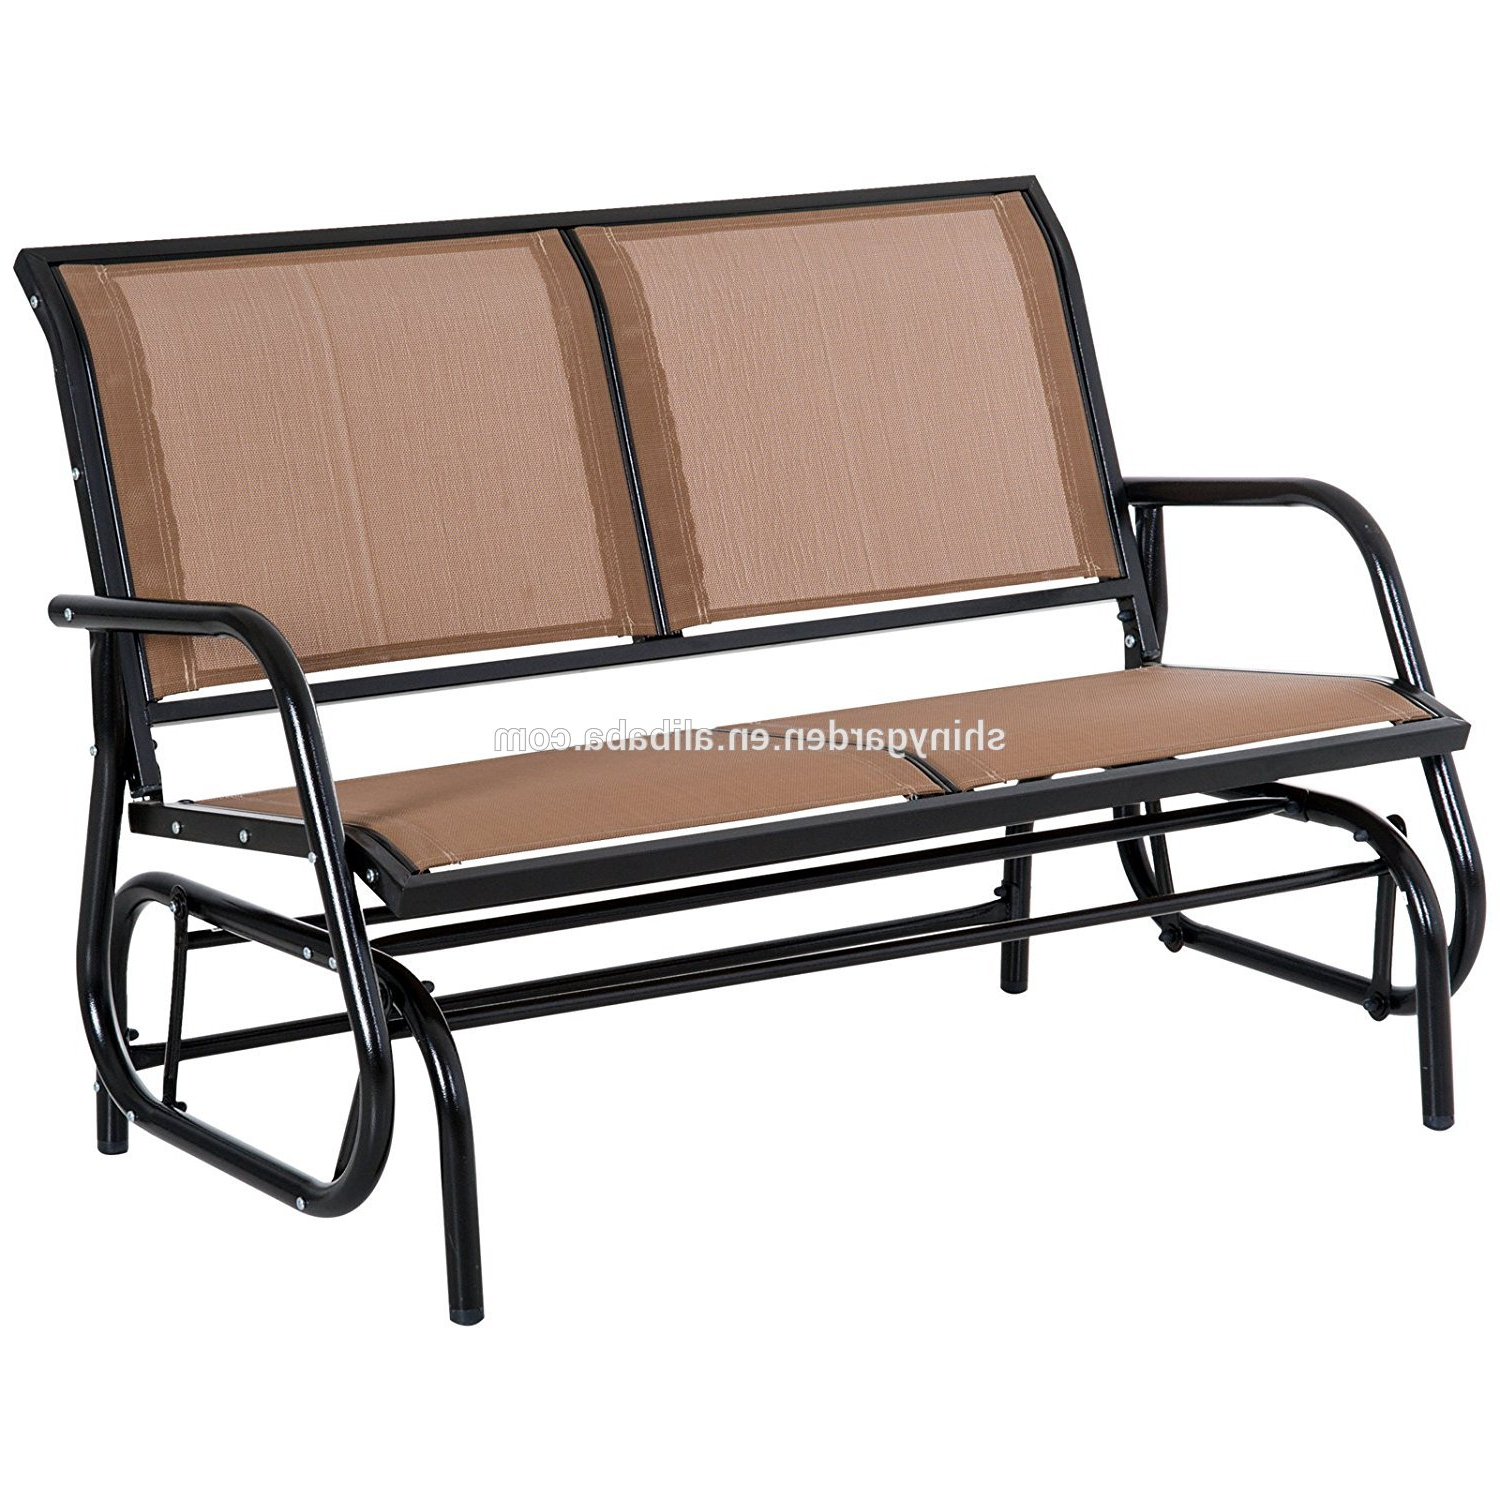 Trendy Outdoor Swing Glider Chair,patio Bench For 2 Person,garden Rocking Seating  – Buy Swing Glider Chair Product On Alibaba Pertaining To Rocking Glider Benches (Gallery 15 of 30)